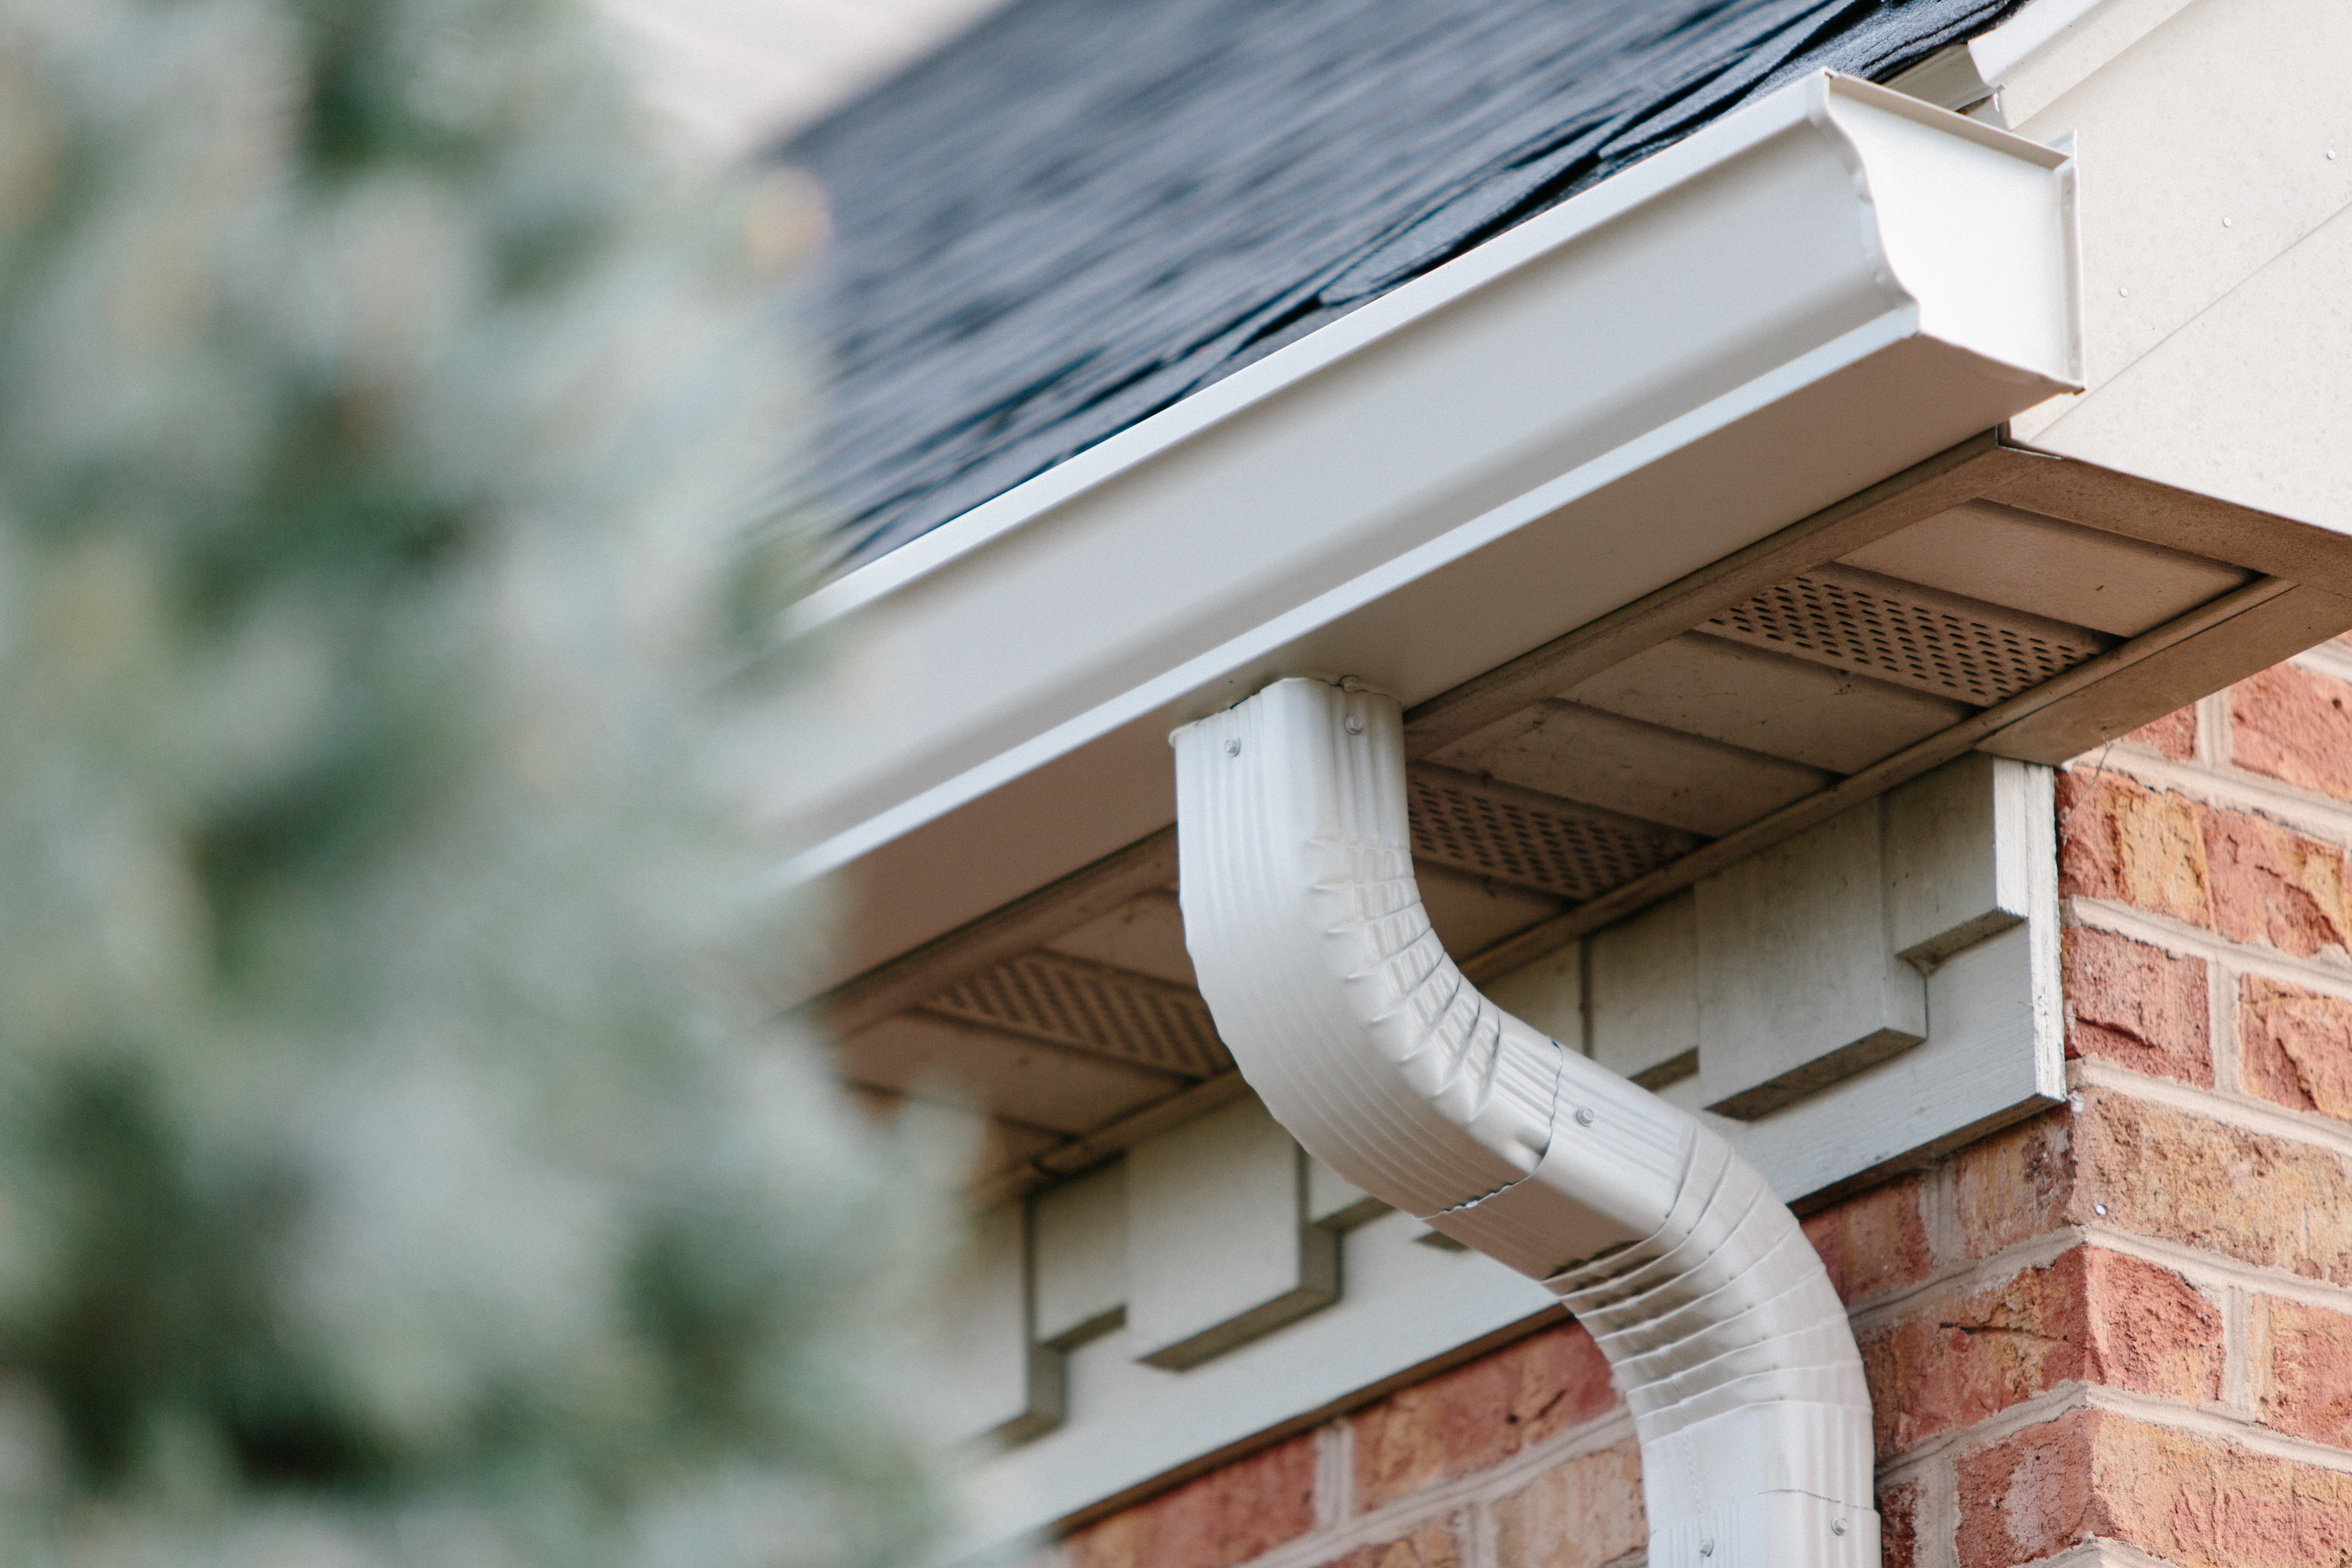 Trusted roofing companies in virginia valley roofing harrisonburg gutter installation company solutioingenieria Gallery